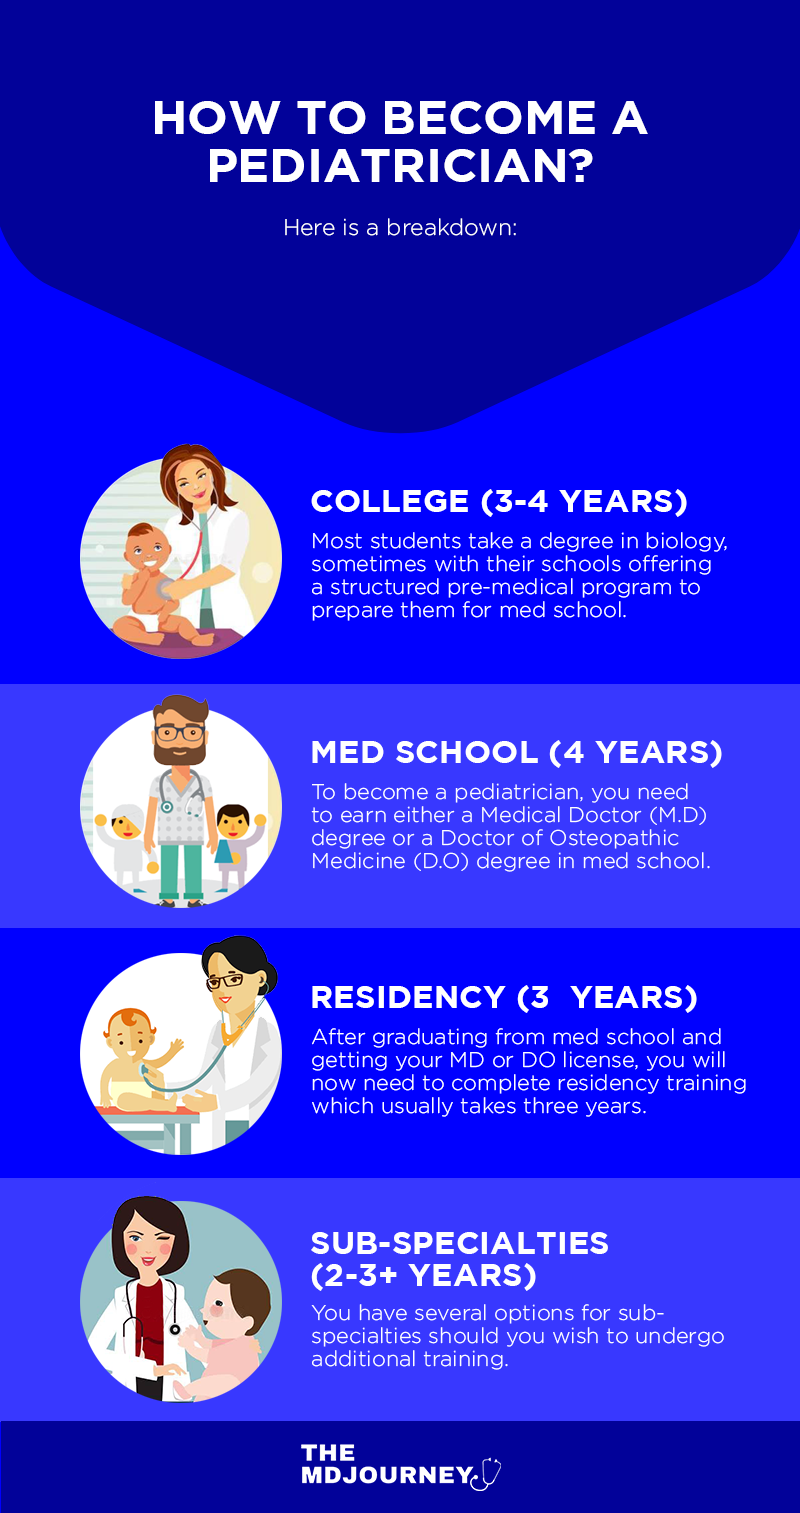 How To Become A Pediatrician Ultimate Guide Themdjourney Medical School Motivation Medical School Studying Pediatrician